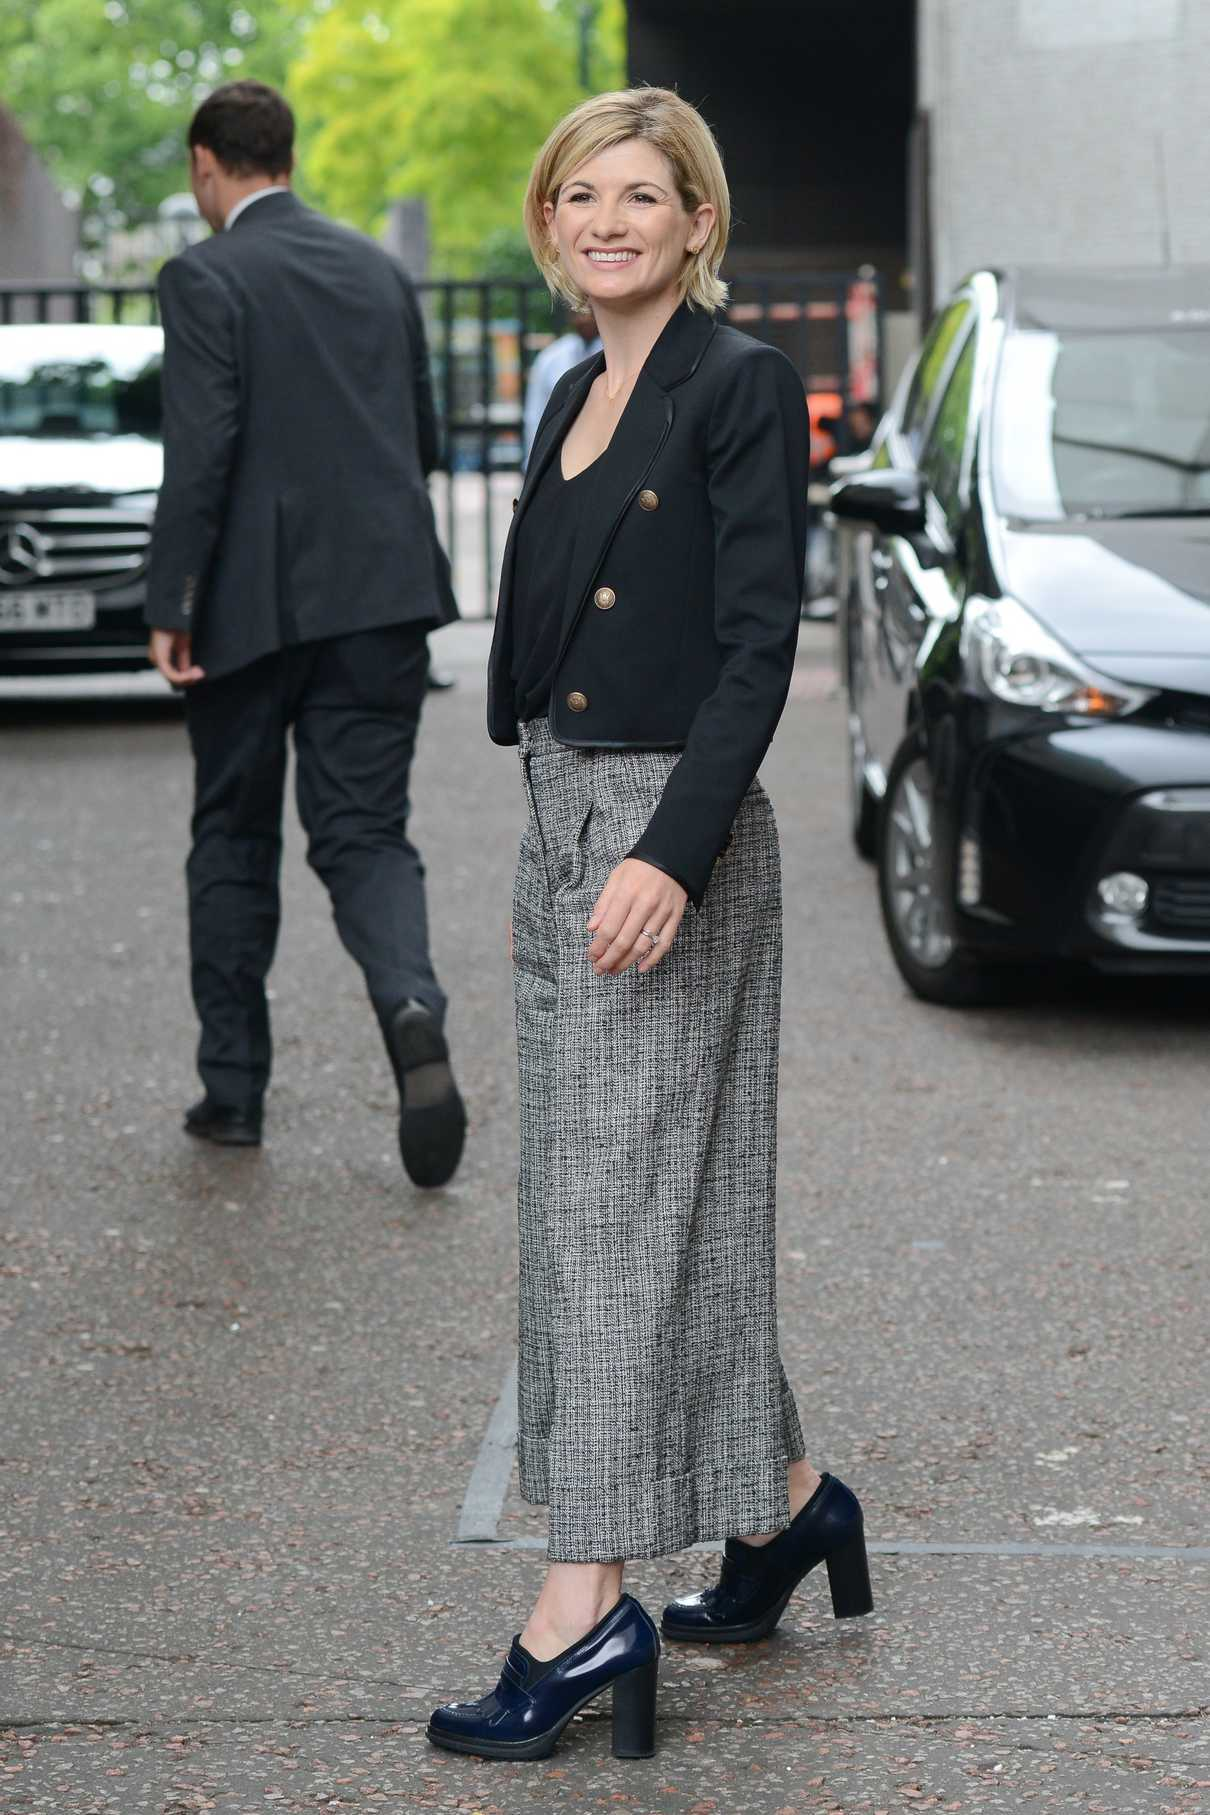 Jodie Whittaker Leaves the ITV Studios in London 08/08/2017